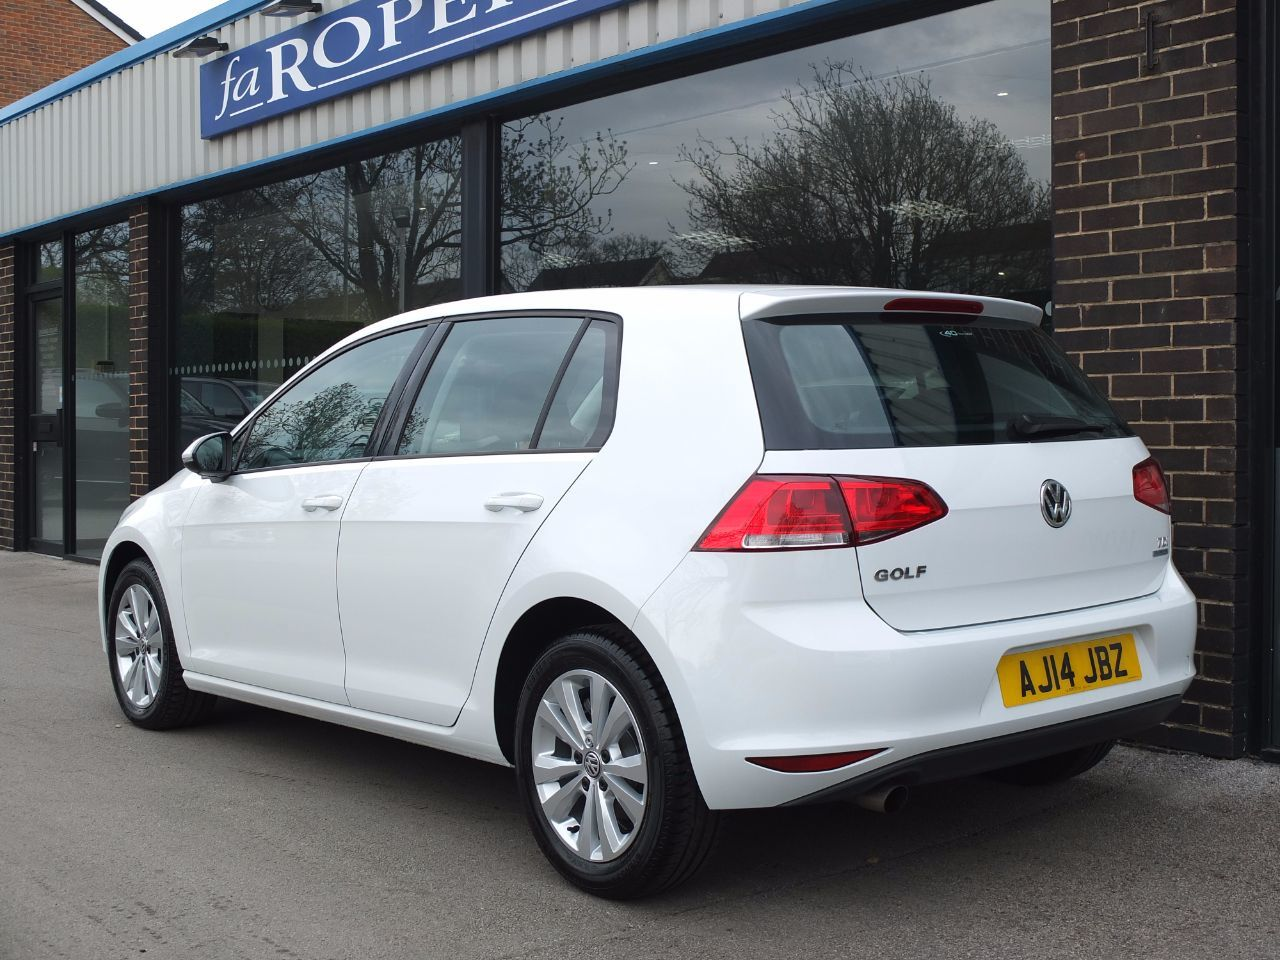 Volkswagen Golf 1.6 TDI 105 SE 5 door Hatchback Diesel Pure White